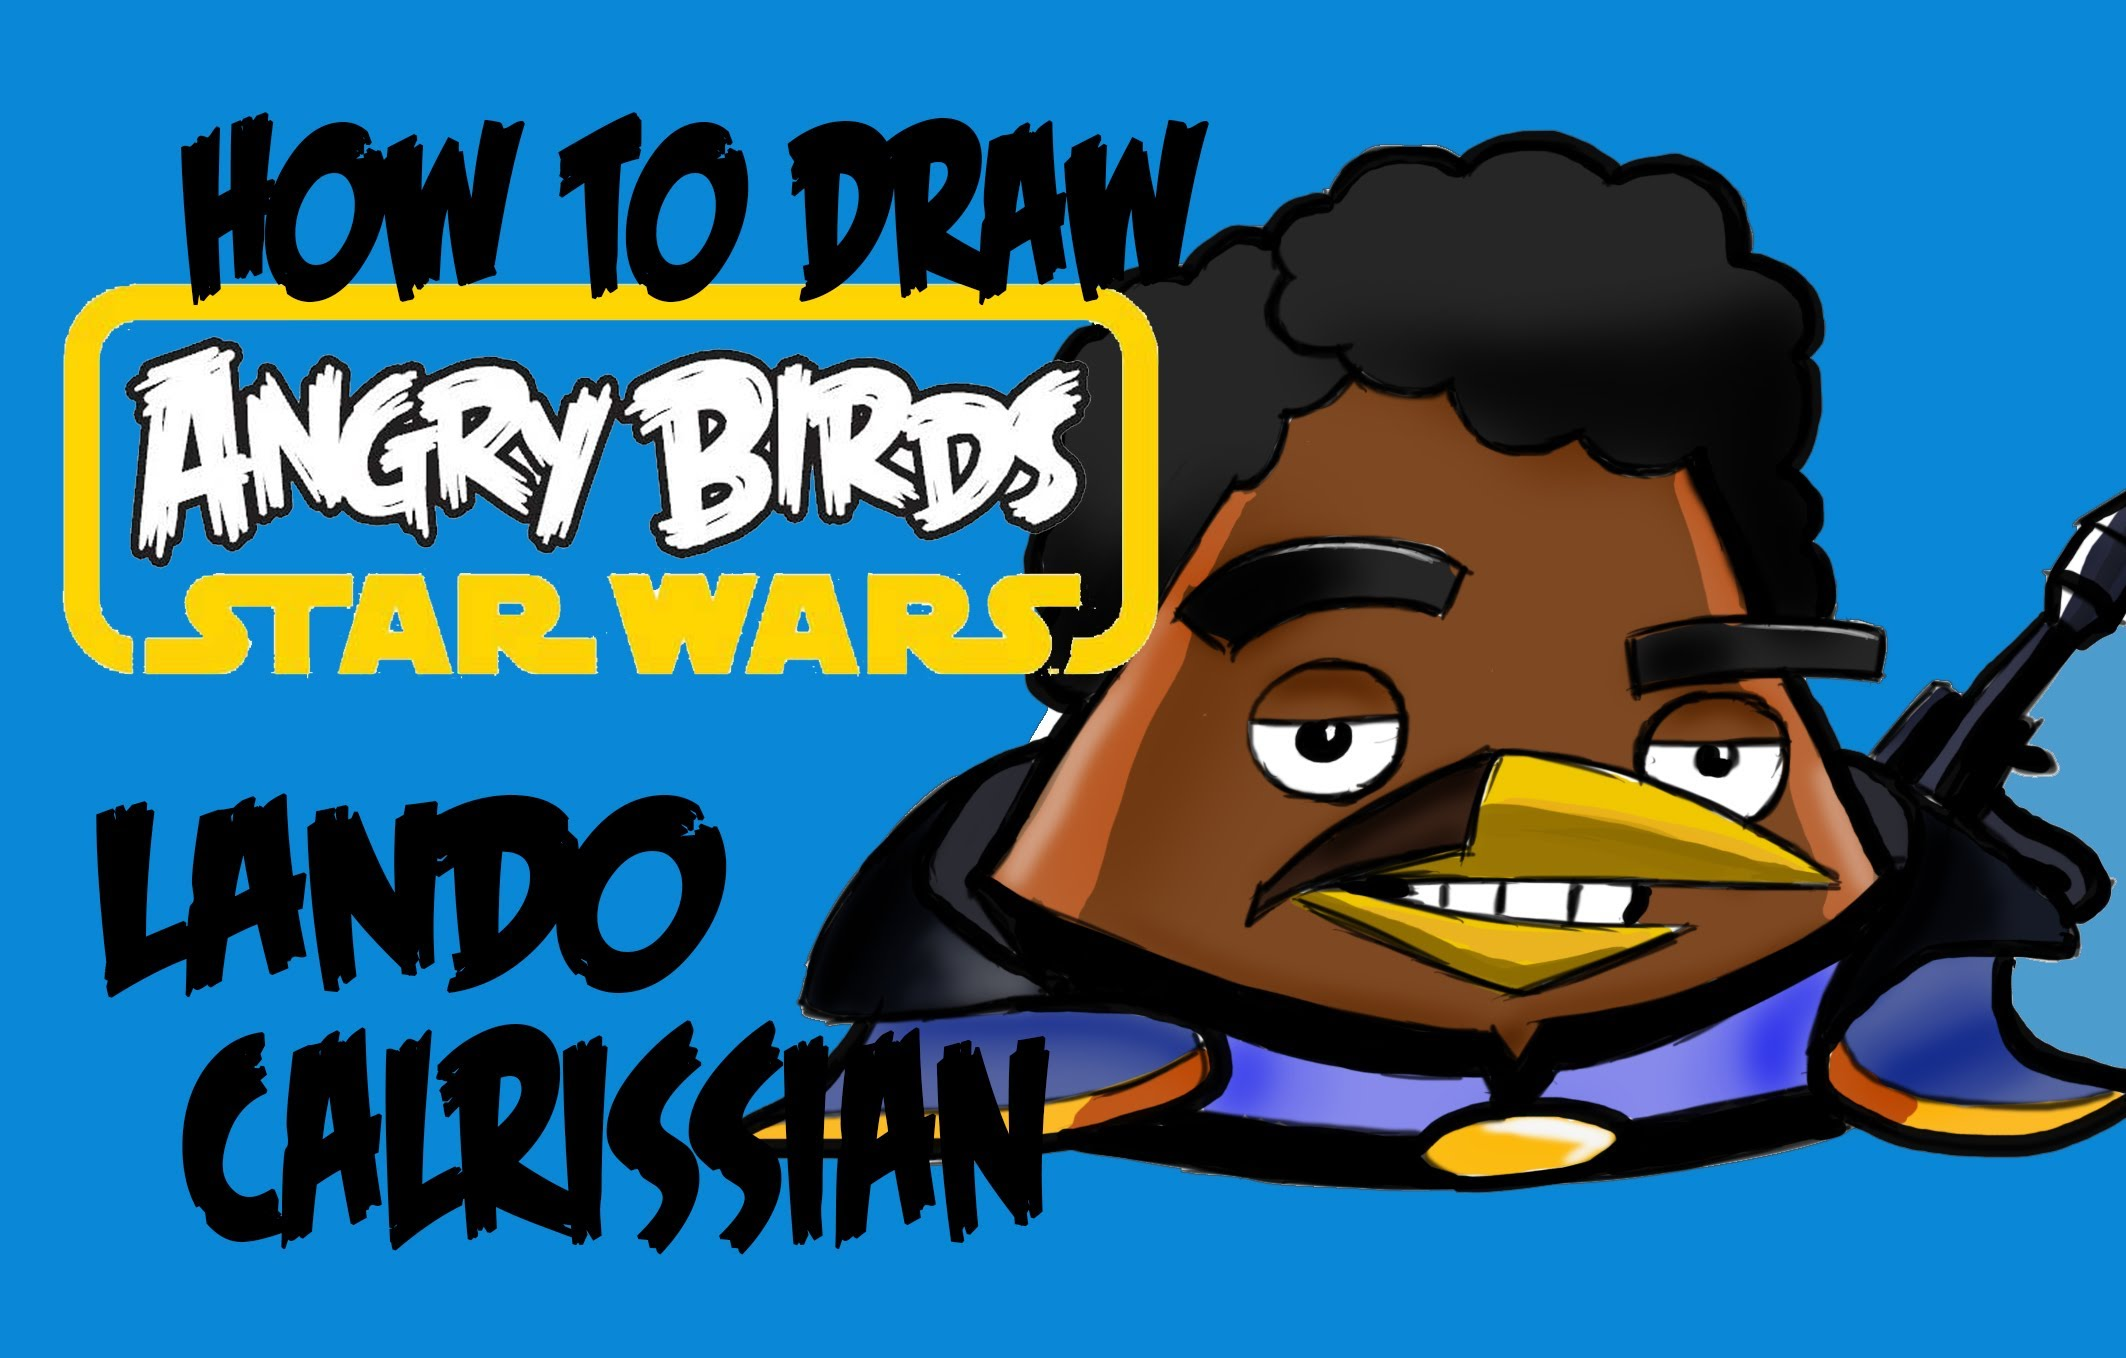 2126x1358 How To Draw Angry Birds Star Wars Lando Calrissian!!!